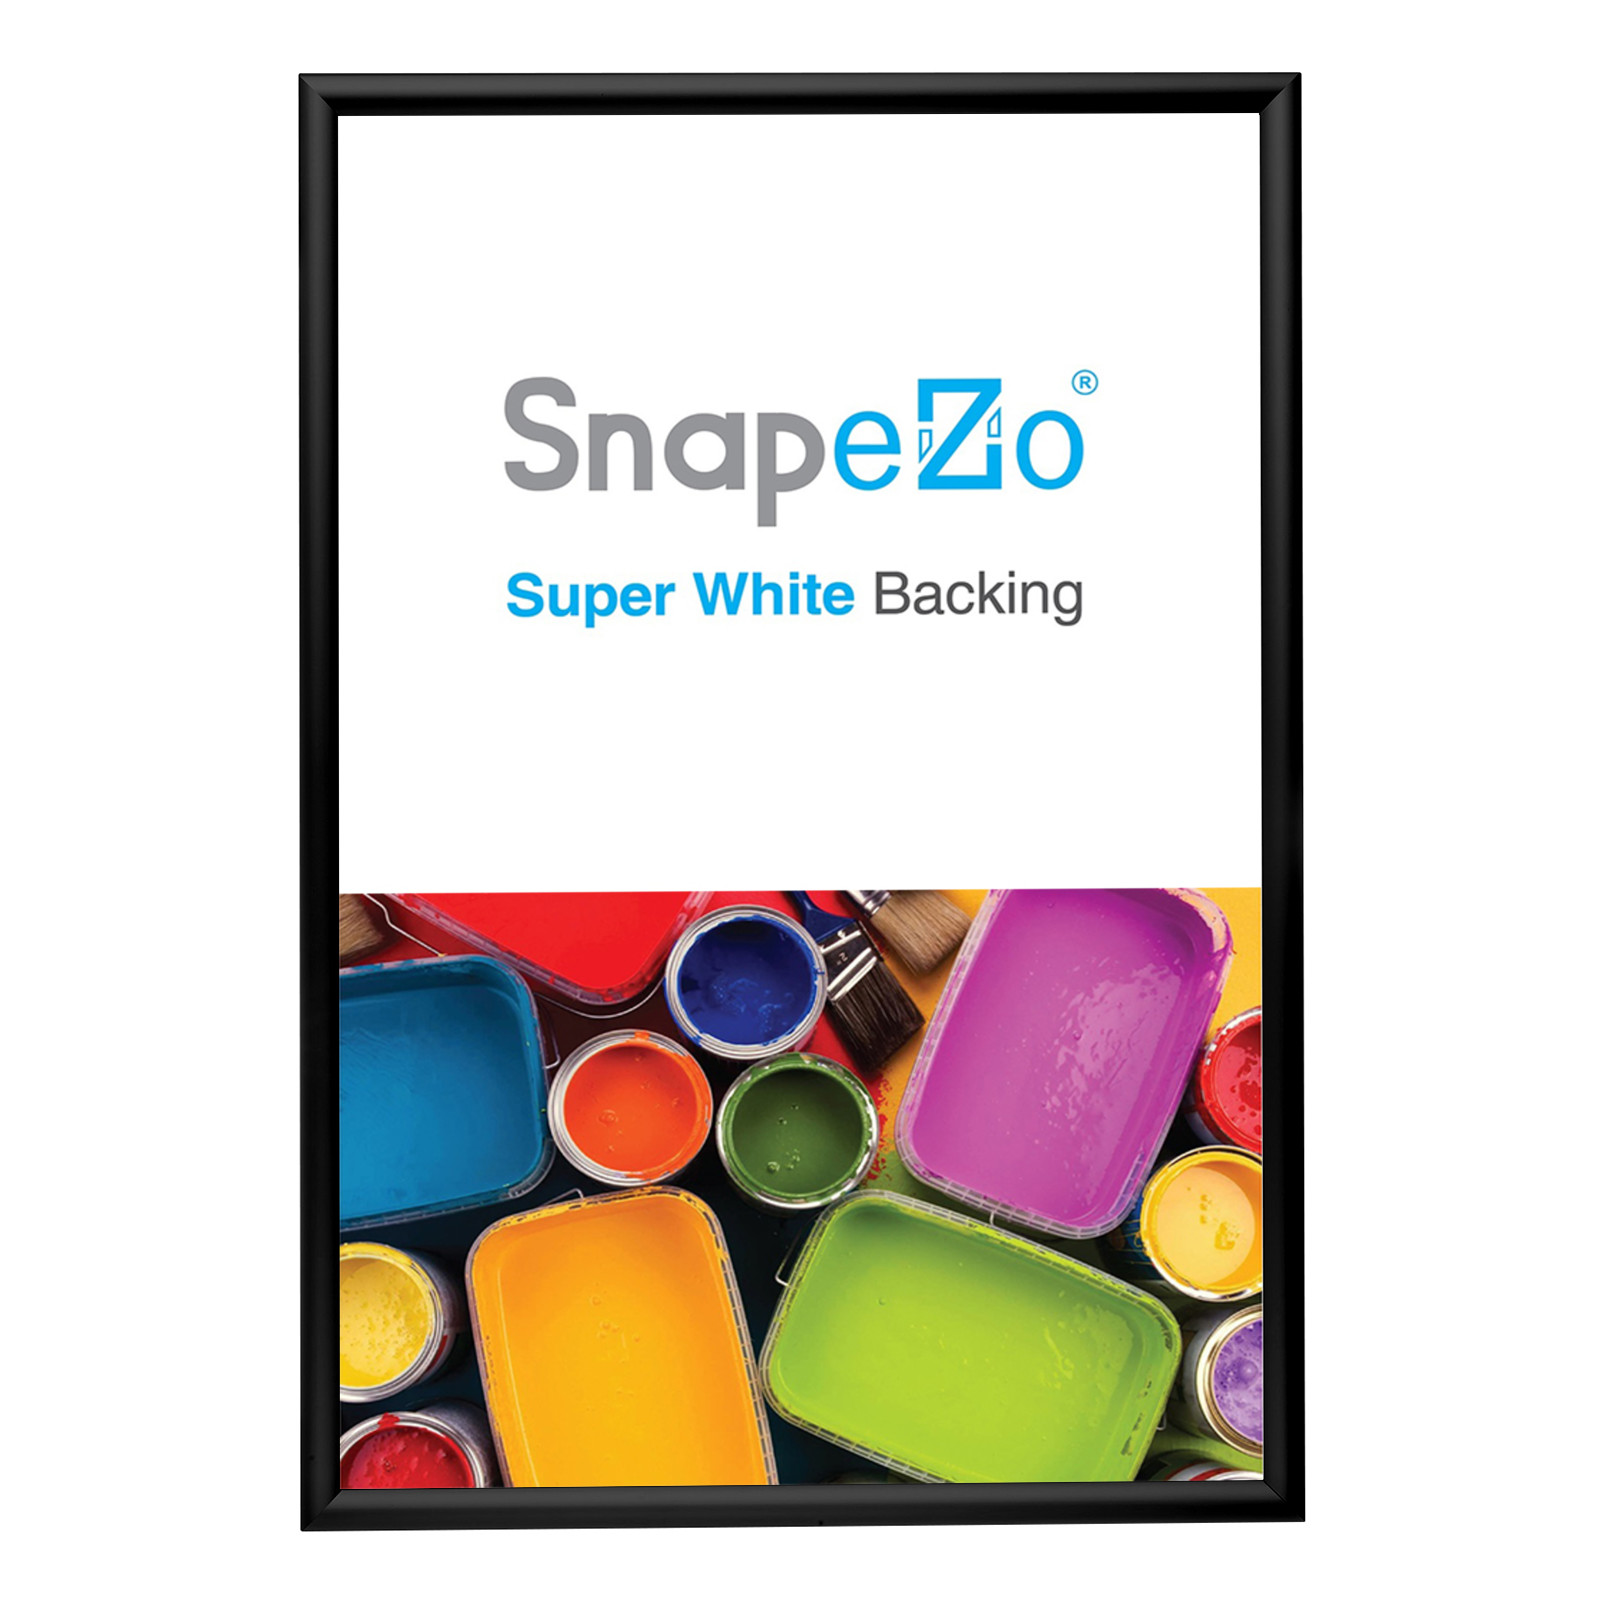 Poster A0 Details About Black Snapezo Snap Frame Poster Size A0 1 2 Inch Profile